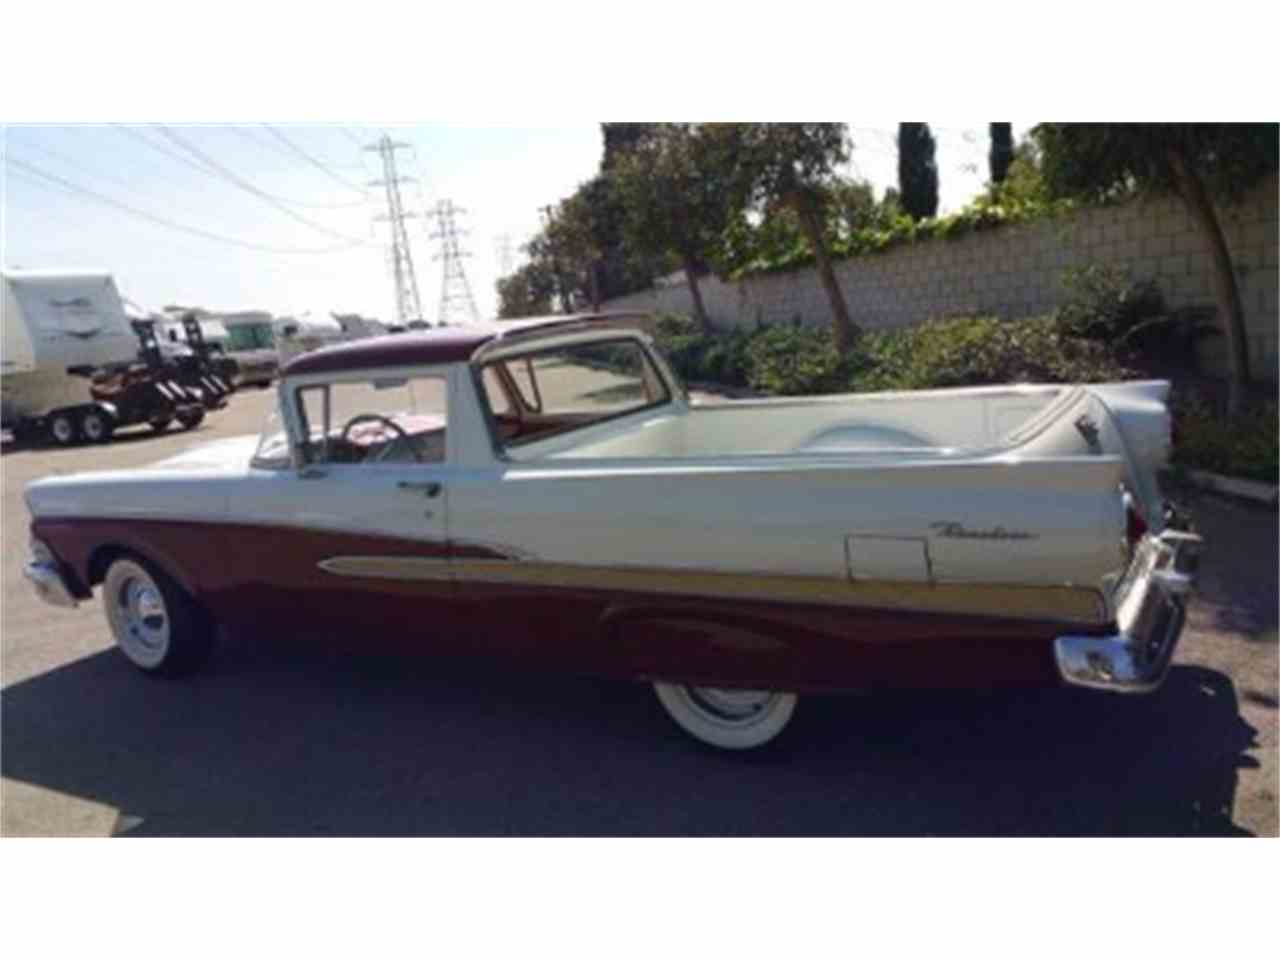 photo 2 - 1958 Ford Ranchero For Sale